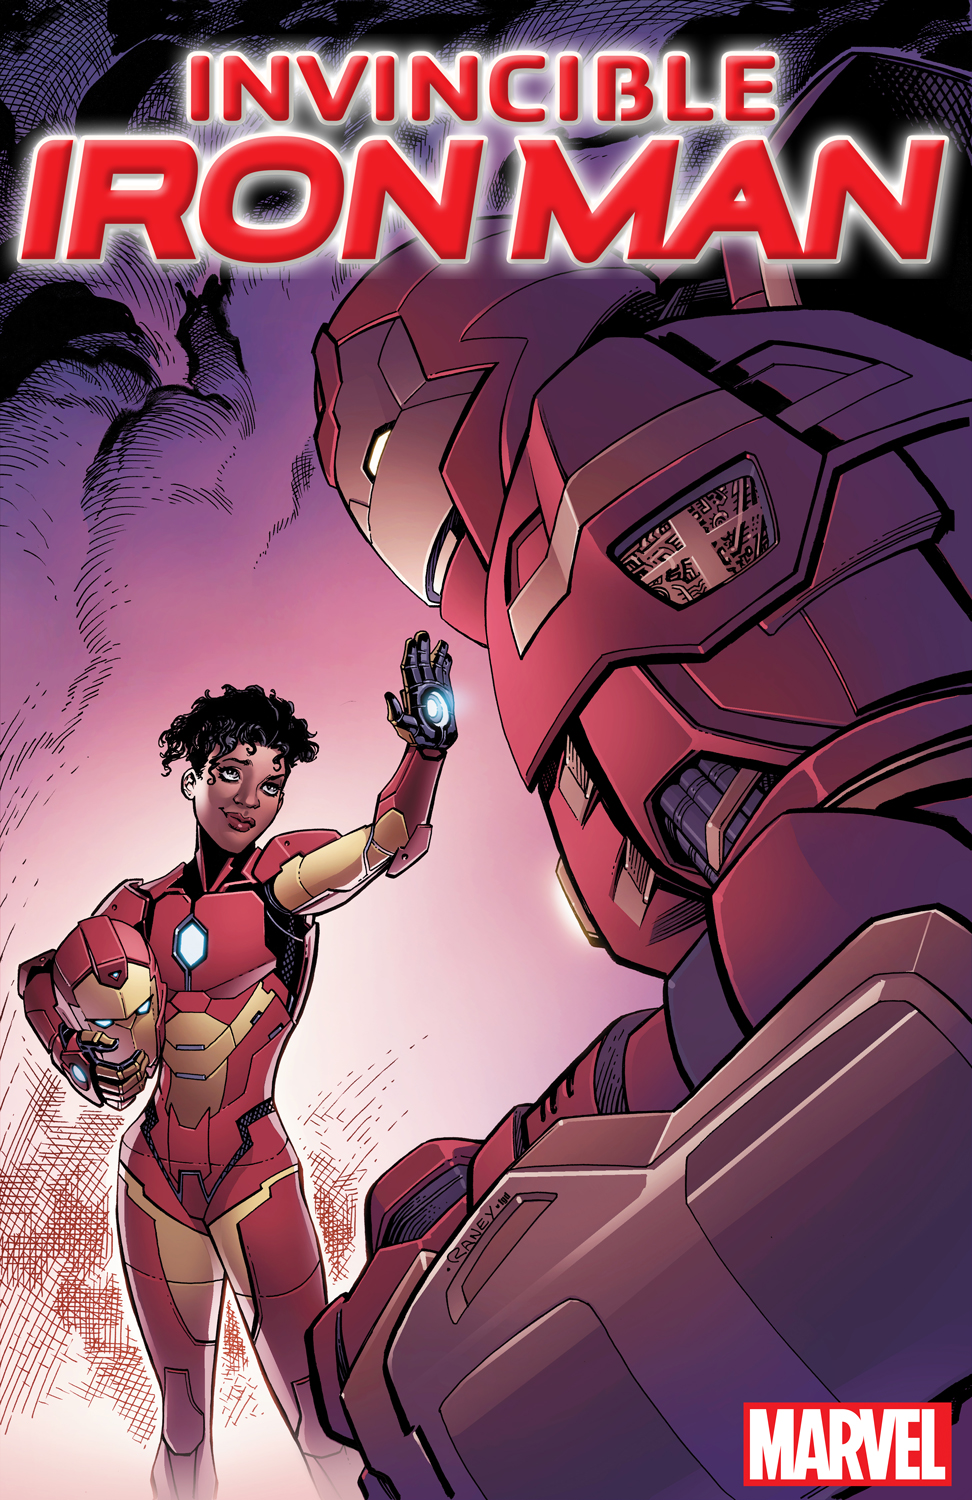 Invincible_Iron_Man_Vol_3_1_Divided_We_Stand_Variant.jpg